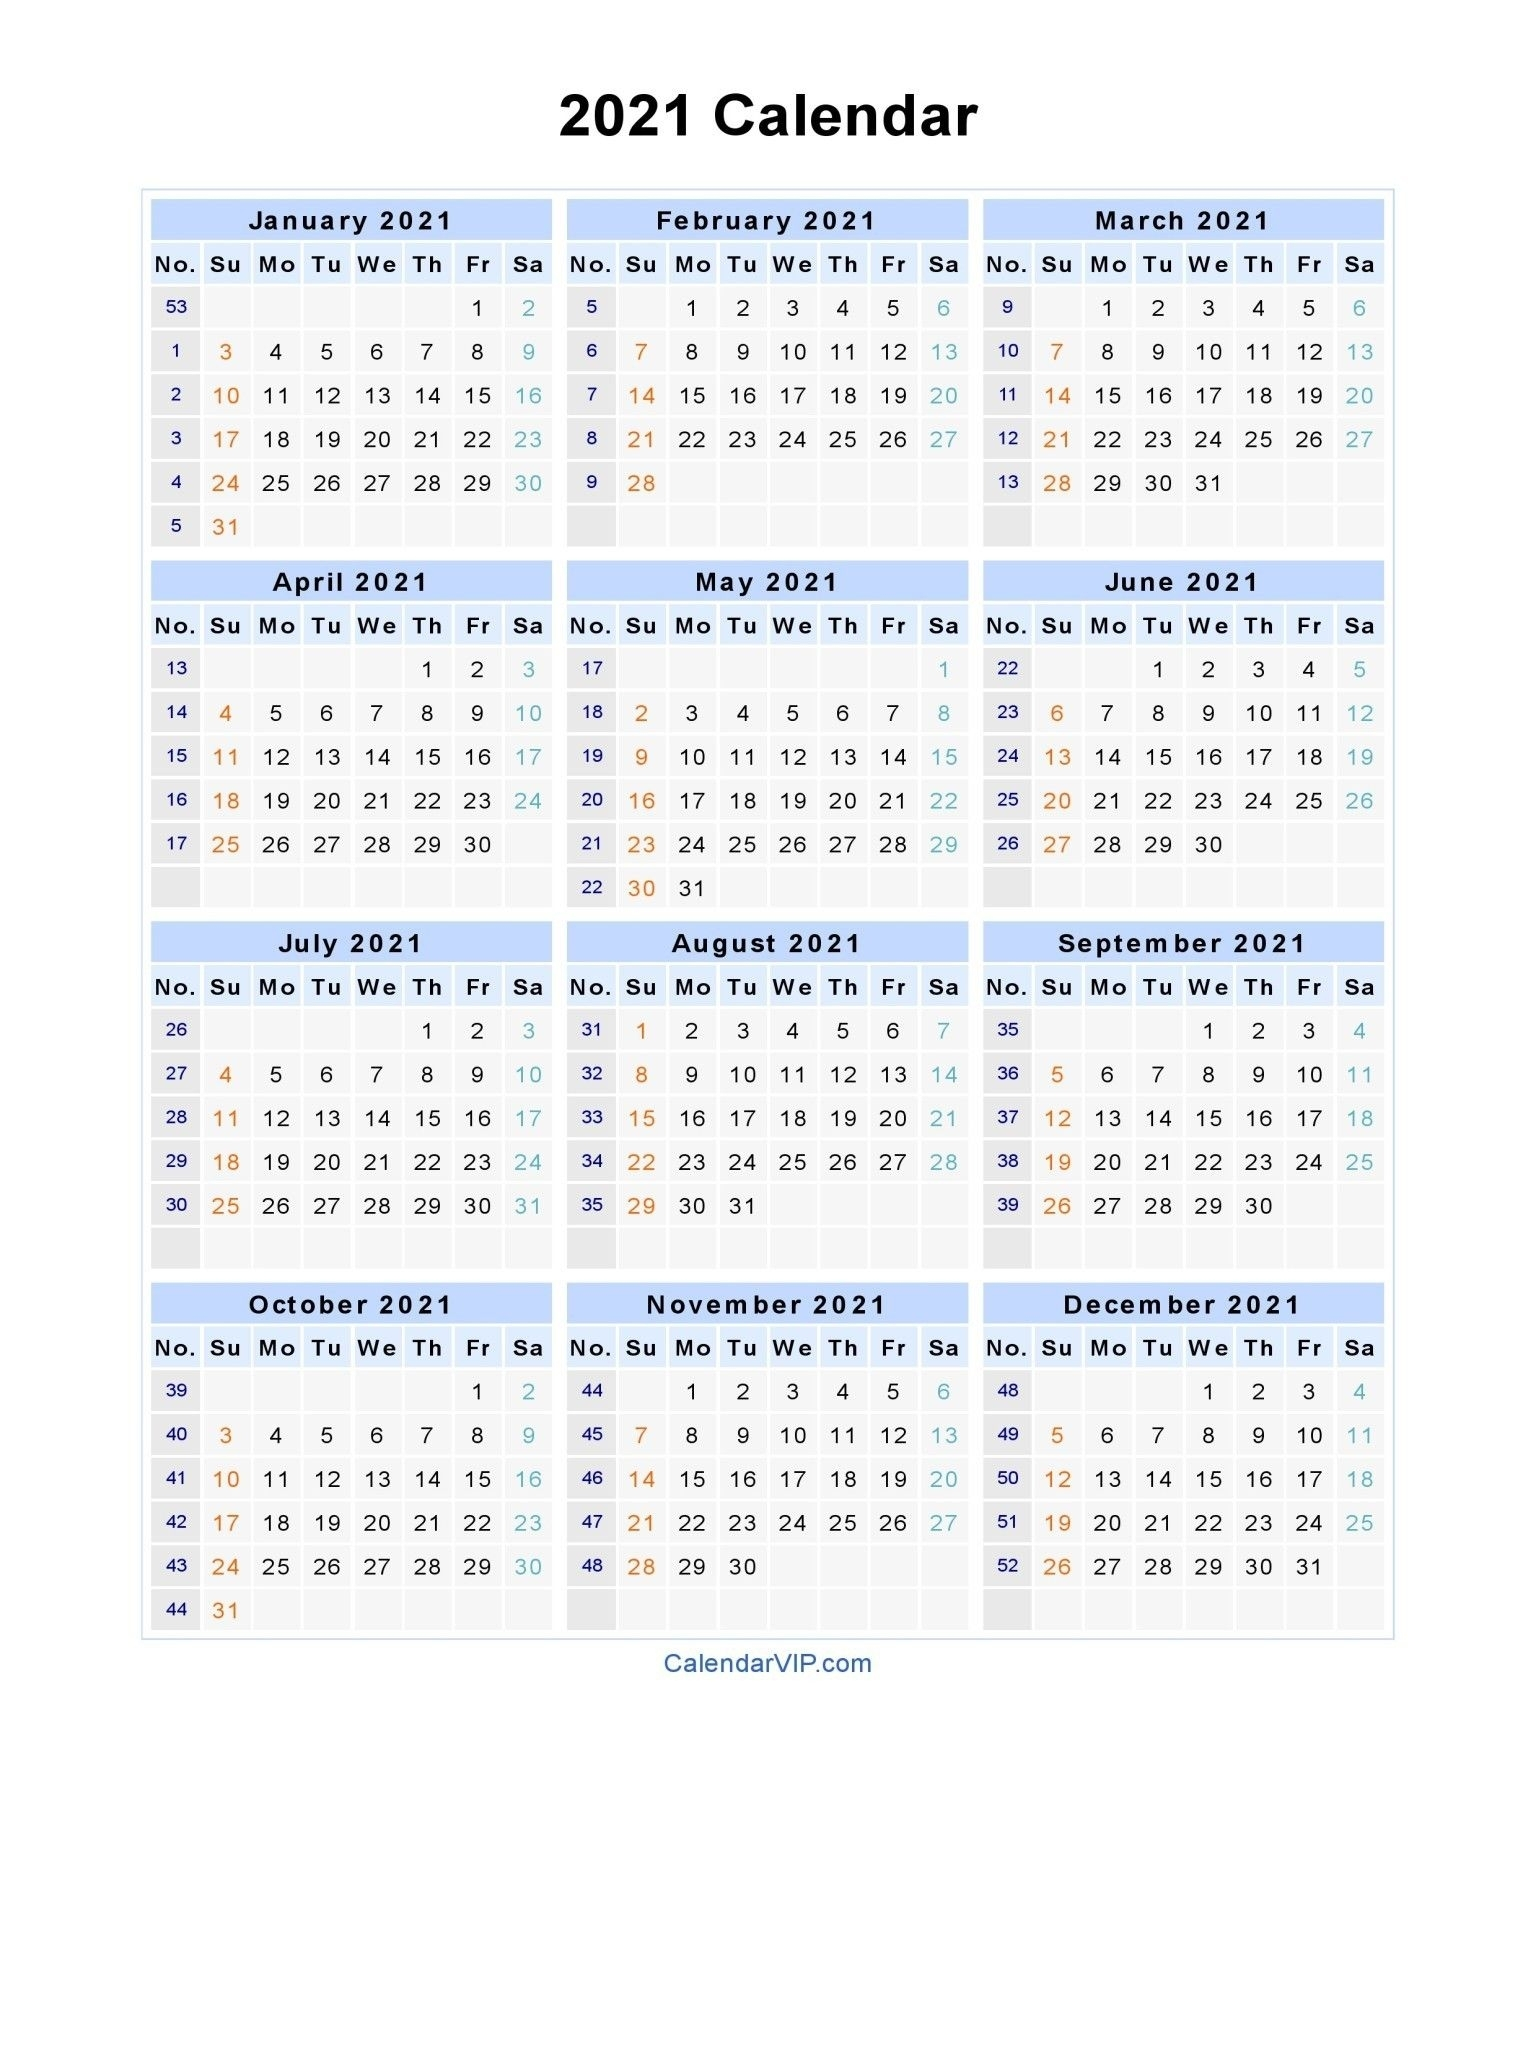 Get Calendar With Days Numbered 2021